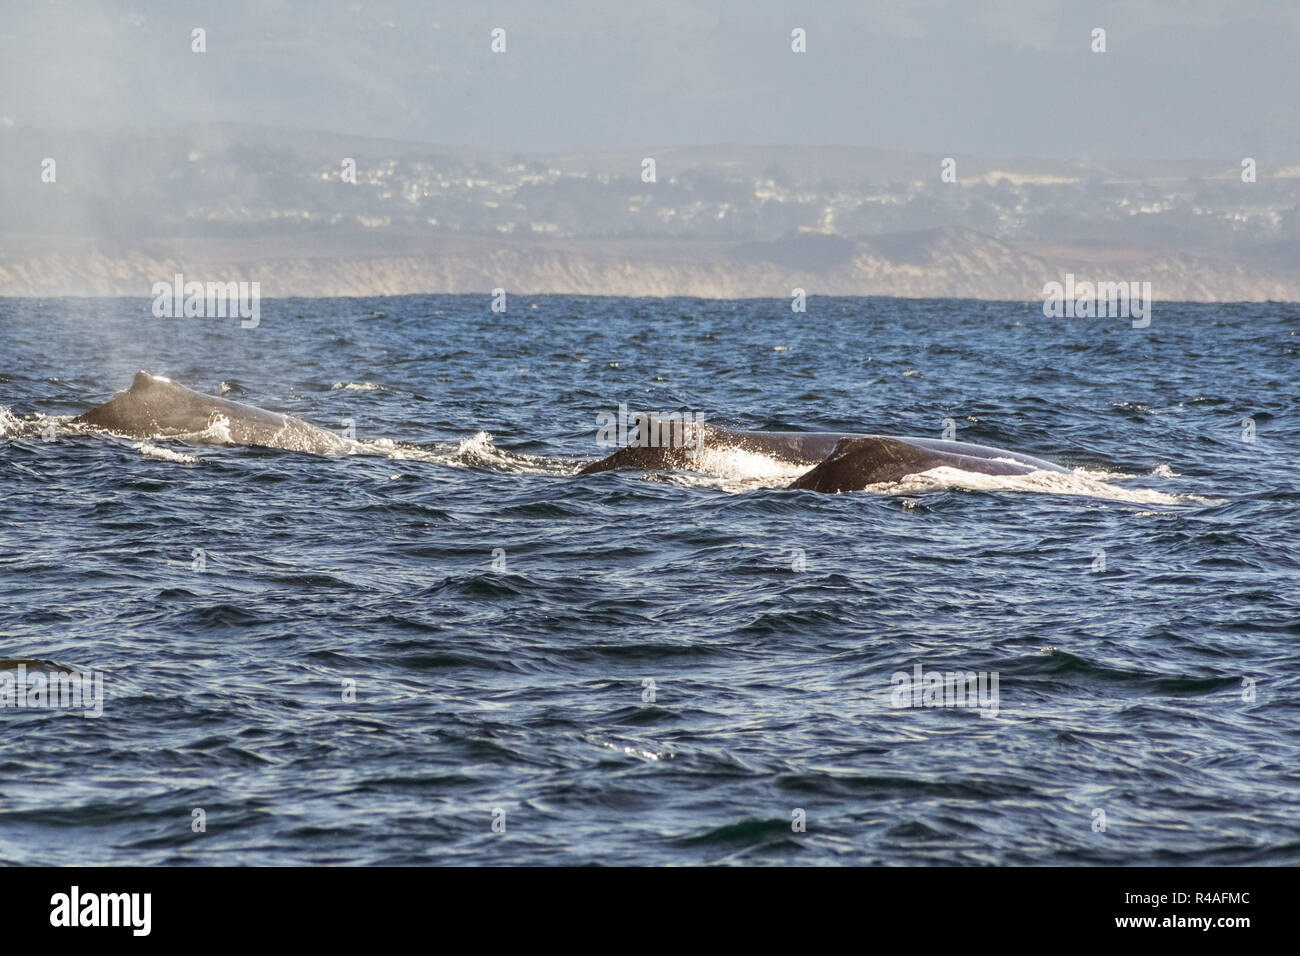 A group of humpback whales swimming in the waters of Monterey bay, California - Stock Image